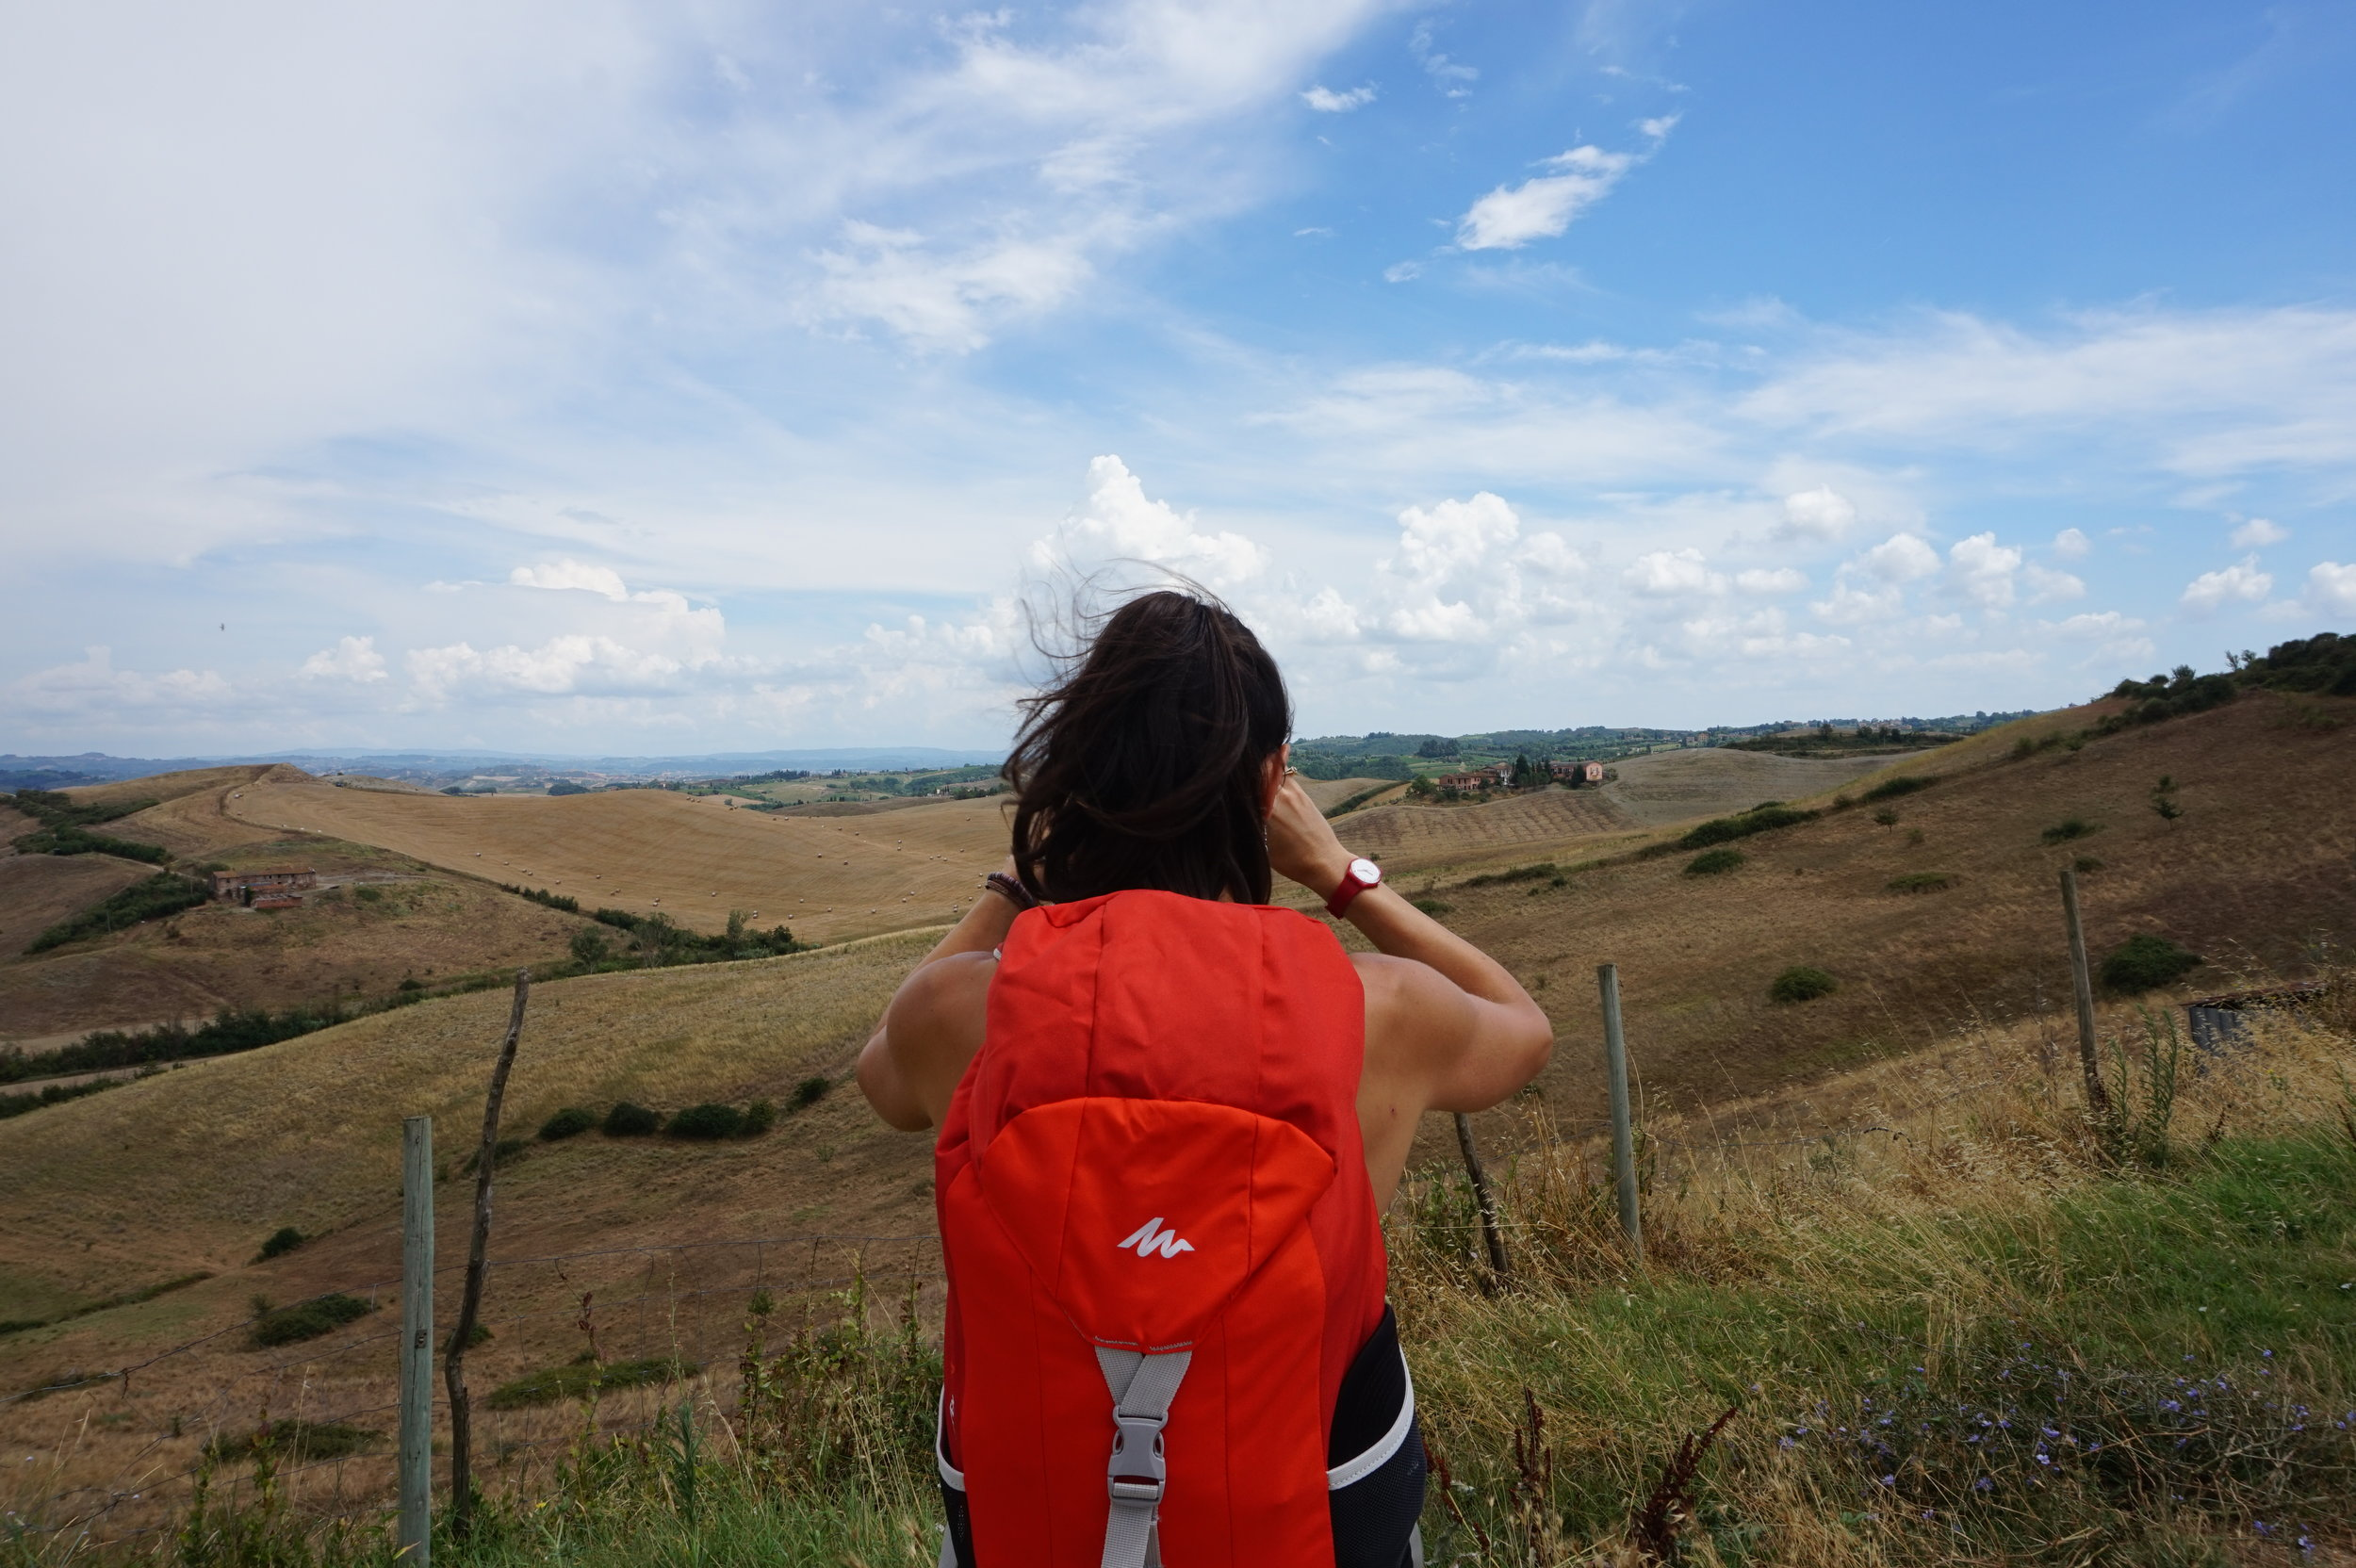 A taste of the Via Francigena - EXPLORE TUSCANY